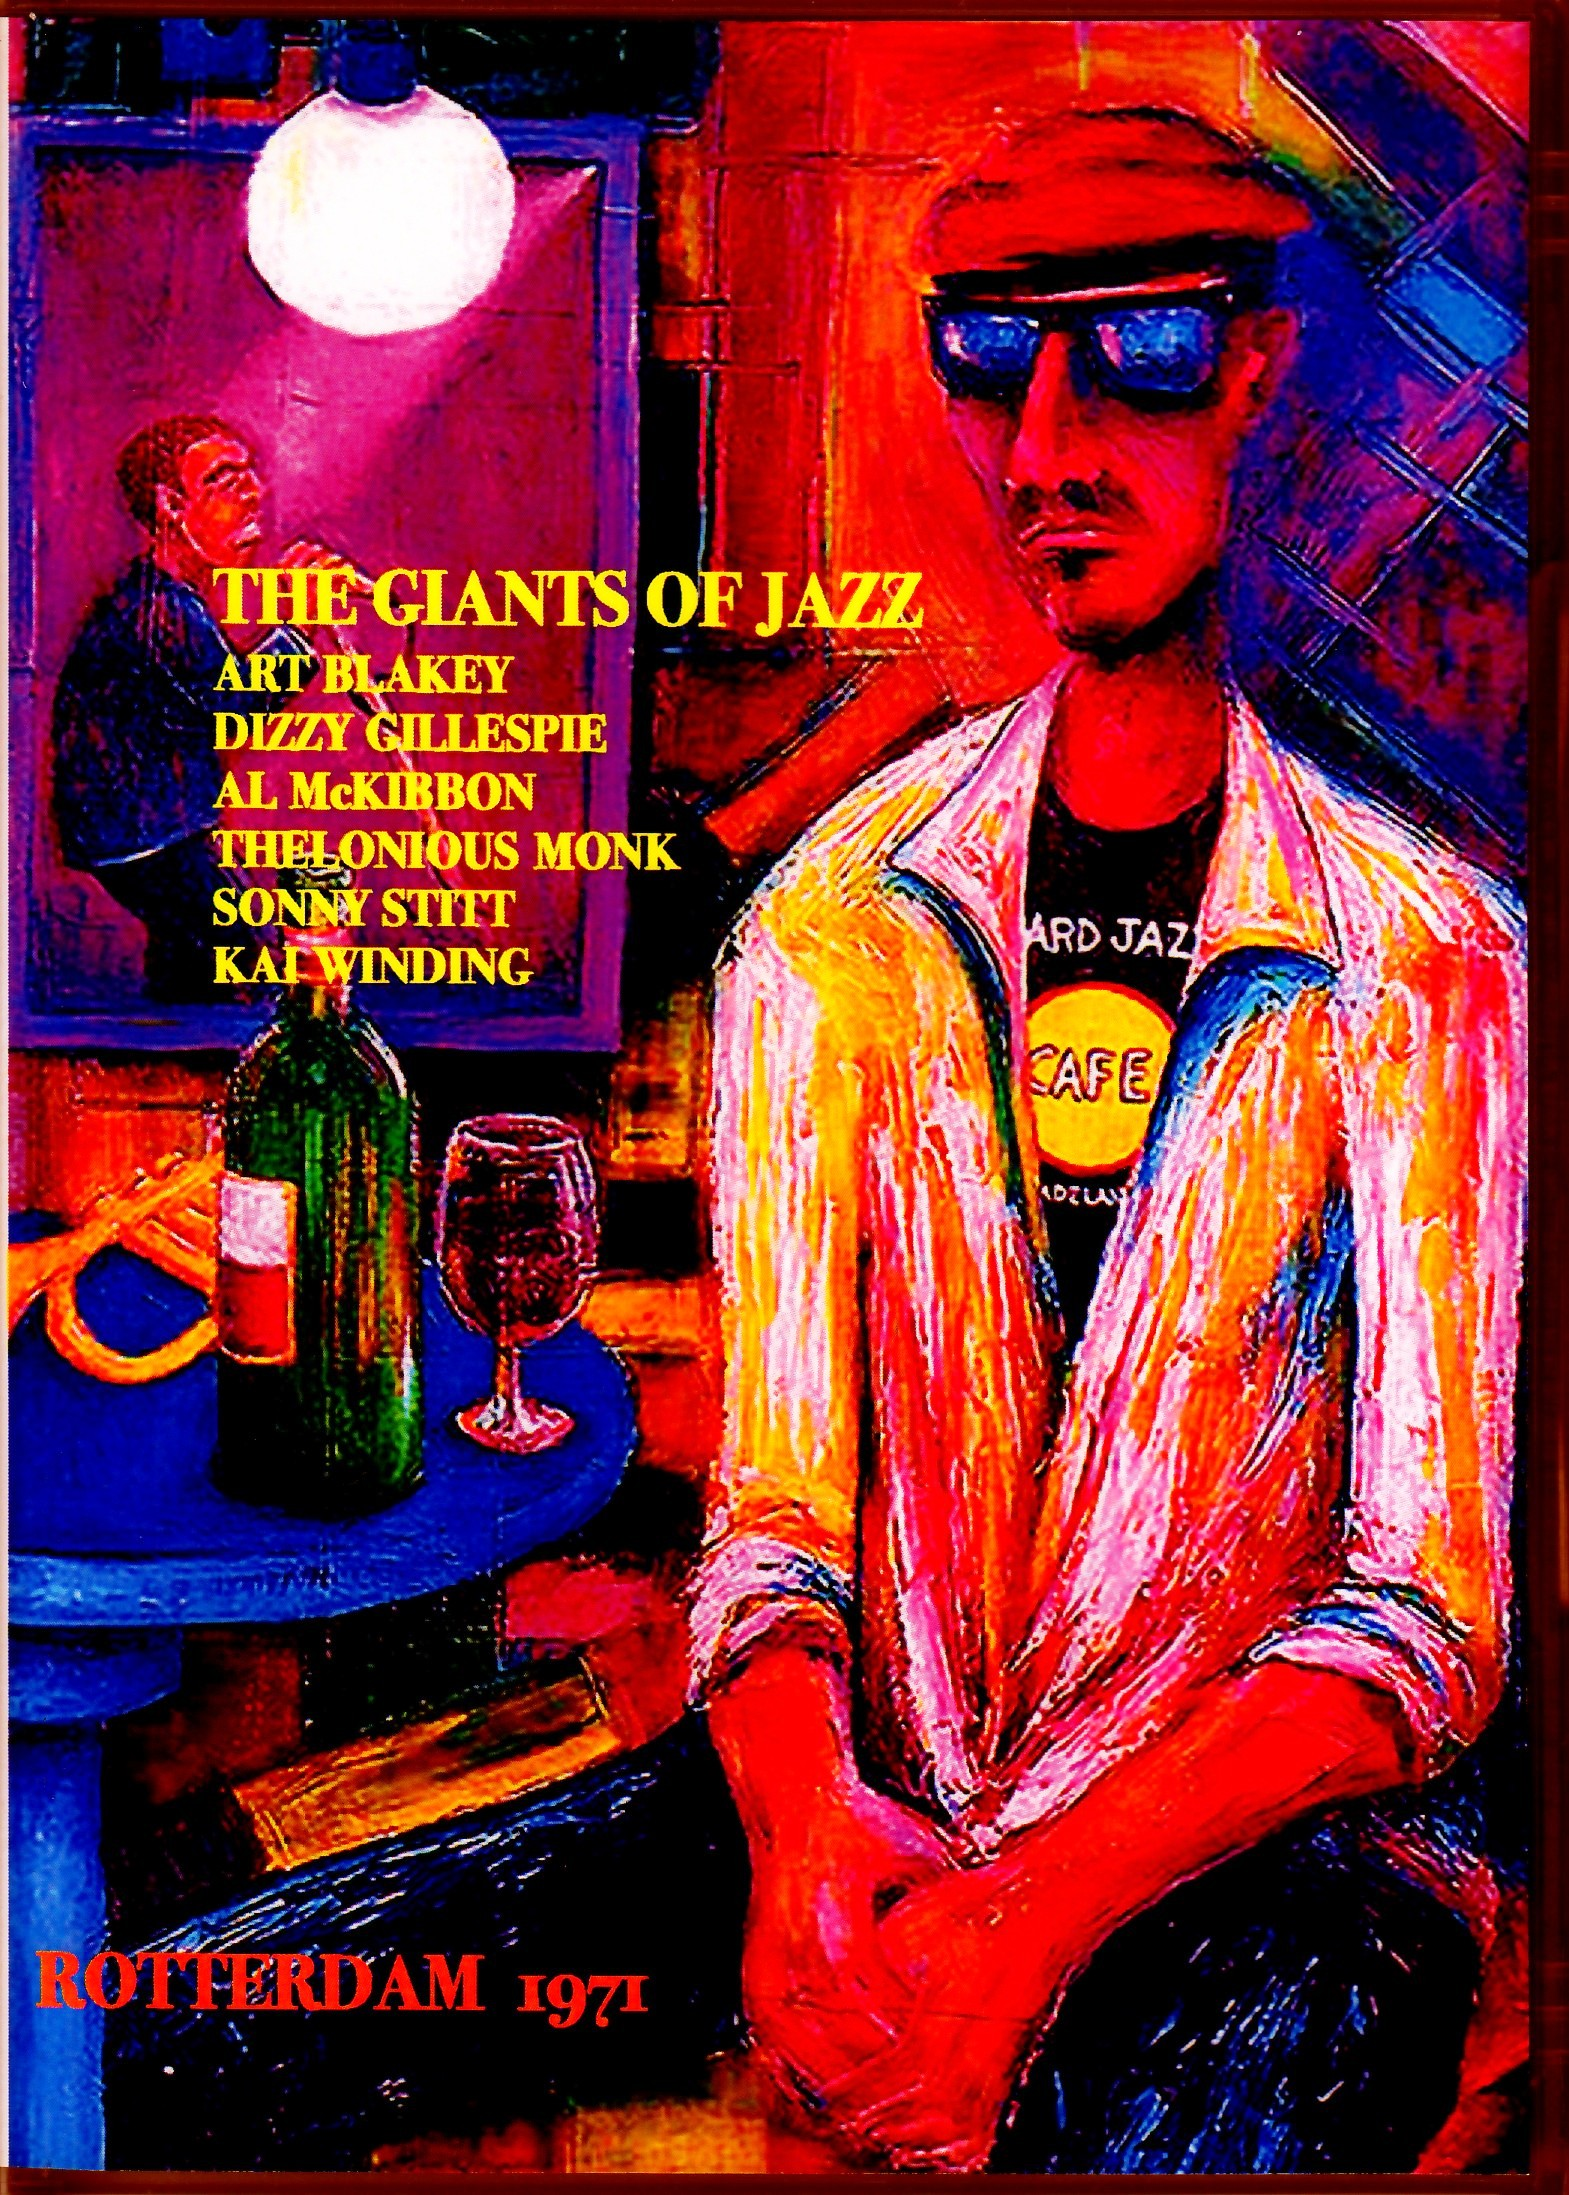 Giants of Jazz,Art Blakey,Dizzy Gillespie,Thelonious Monk/Netherlands 1971 & more